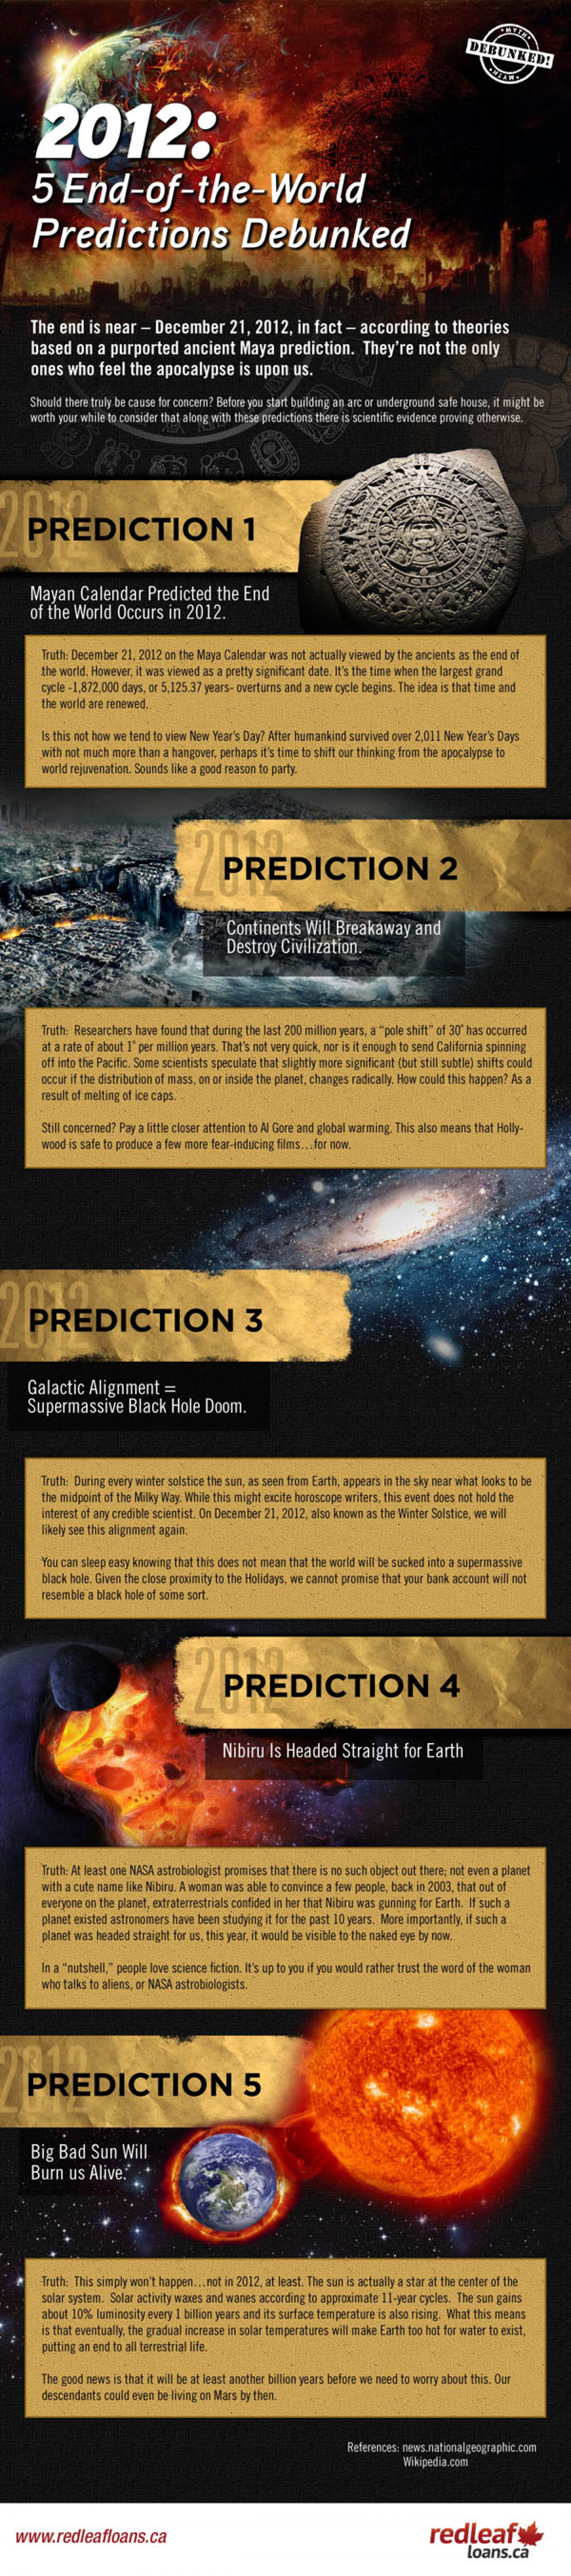 2012: End-of-the-world predictions debunked Infographic